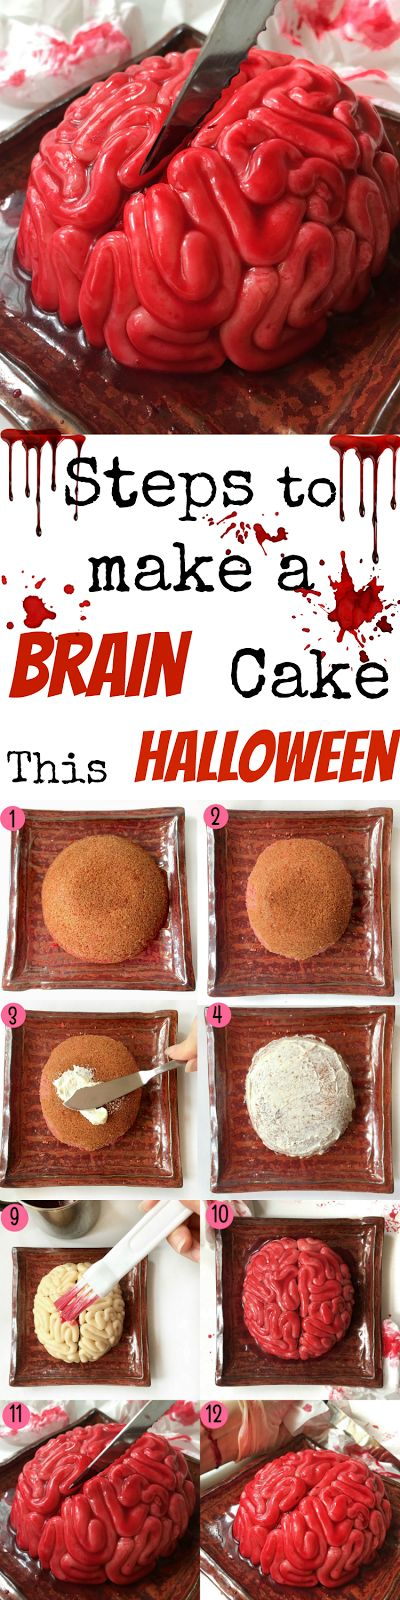 life is too short eat desserts step by step tutorial on how to make a halloween brain cake - Scary Halloween Cake Recipes